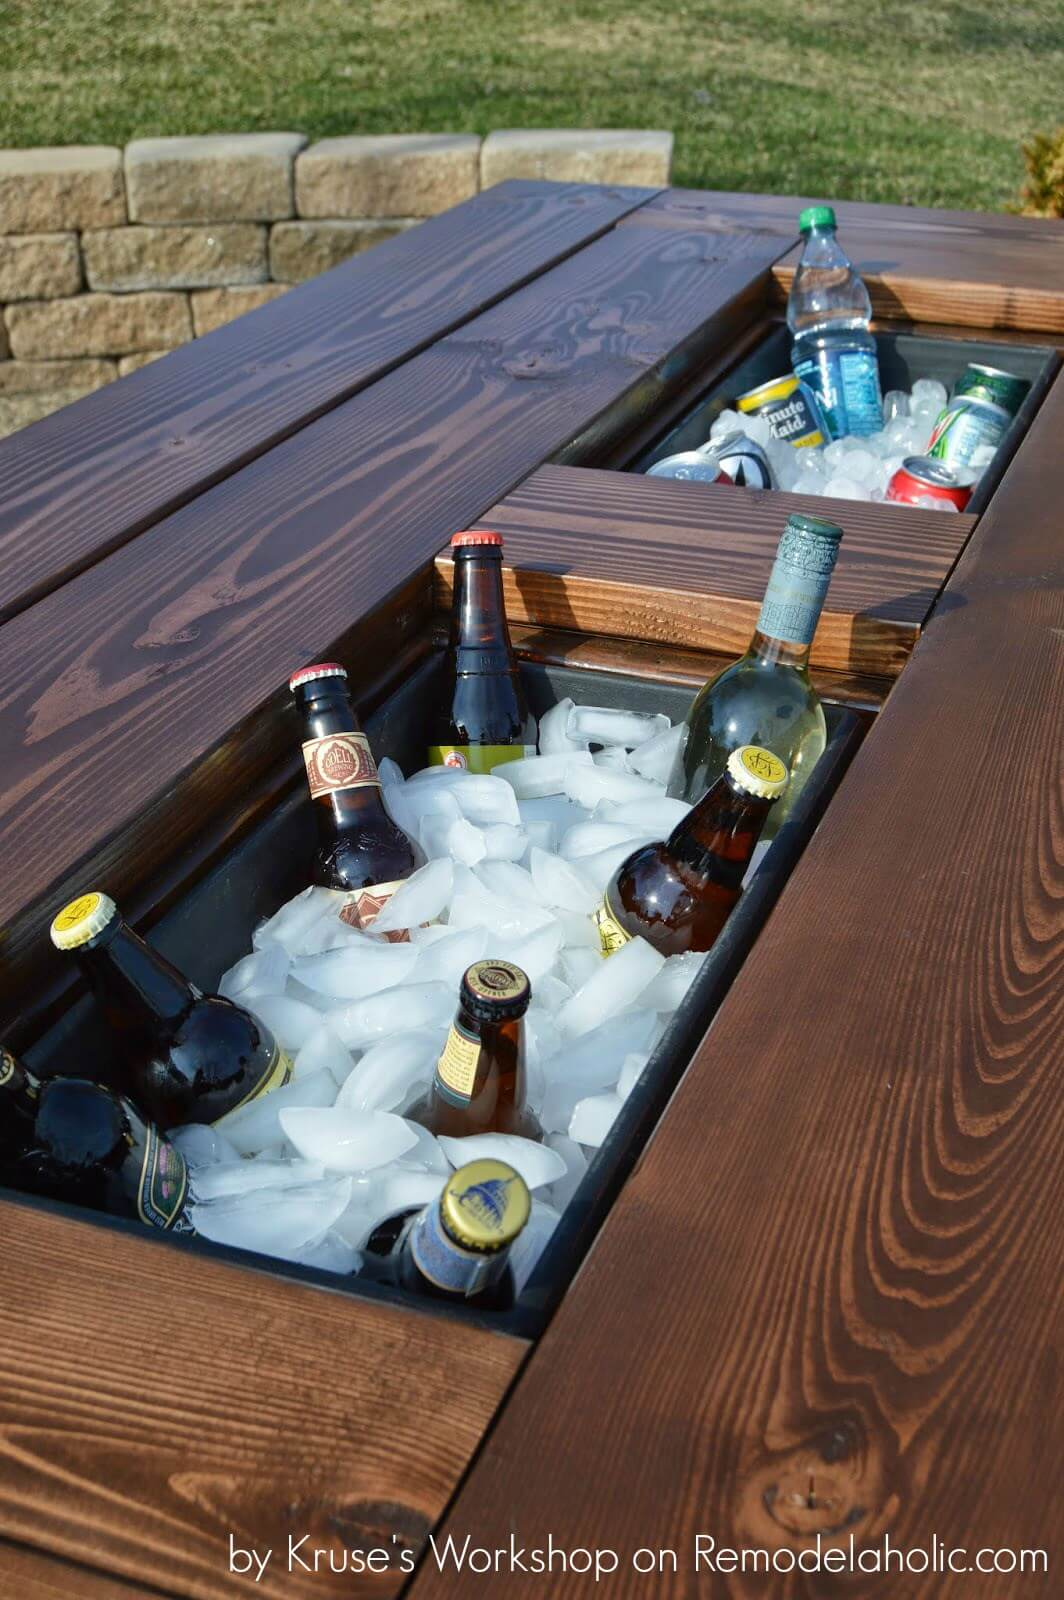 DIY Outdoor Furniture Projects: Pacific Poolside Patio Table With Built-In Icebox